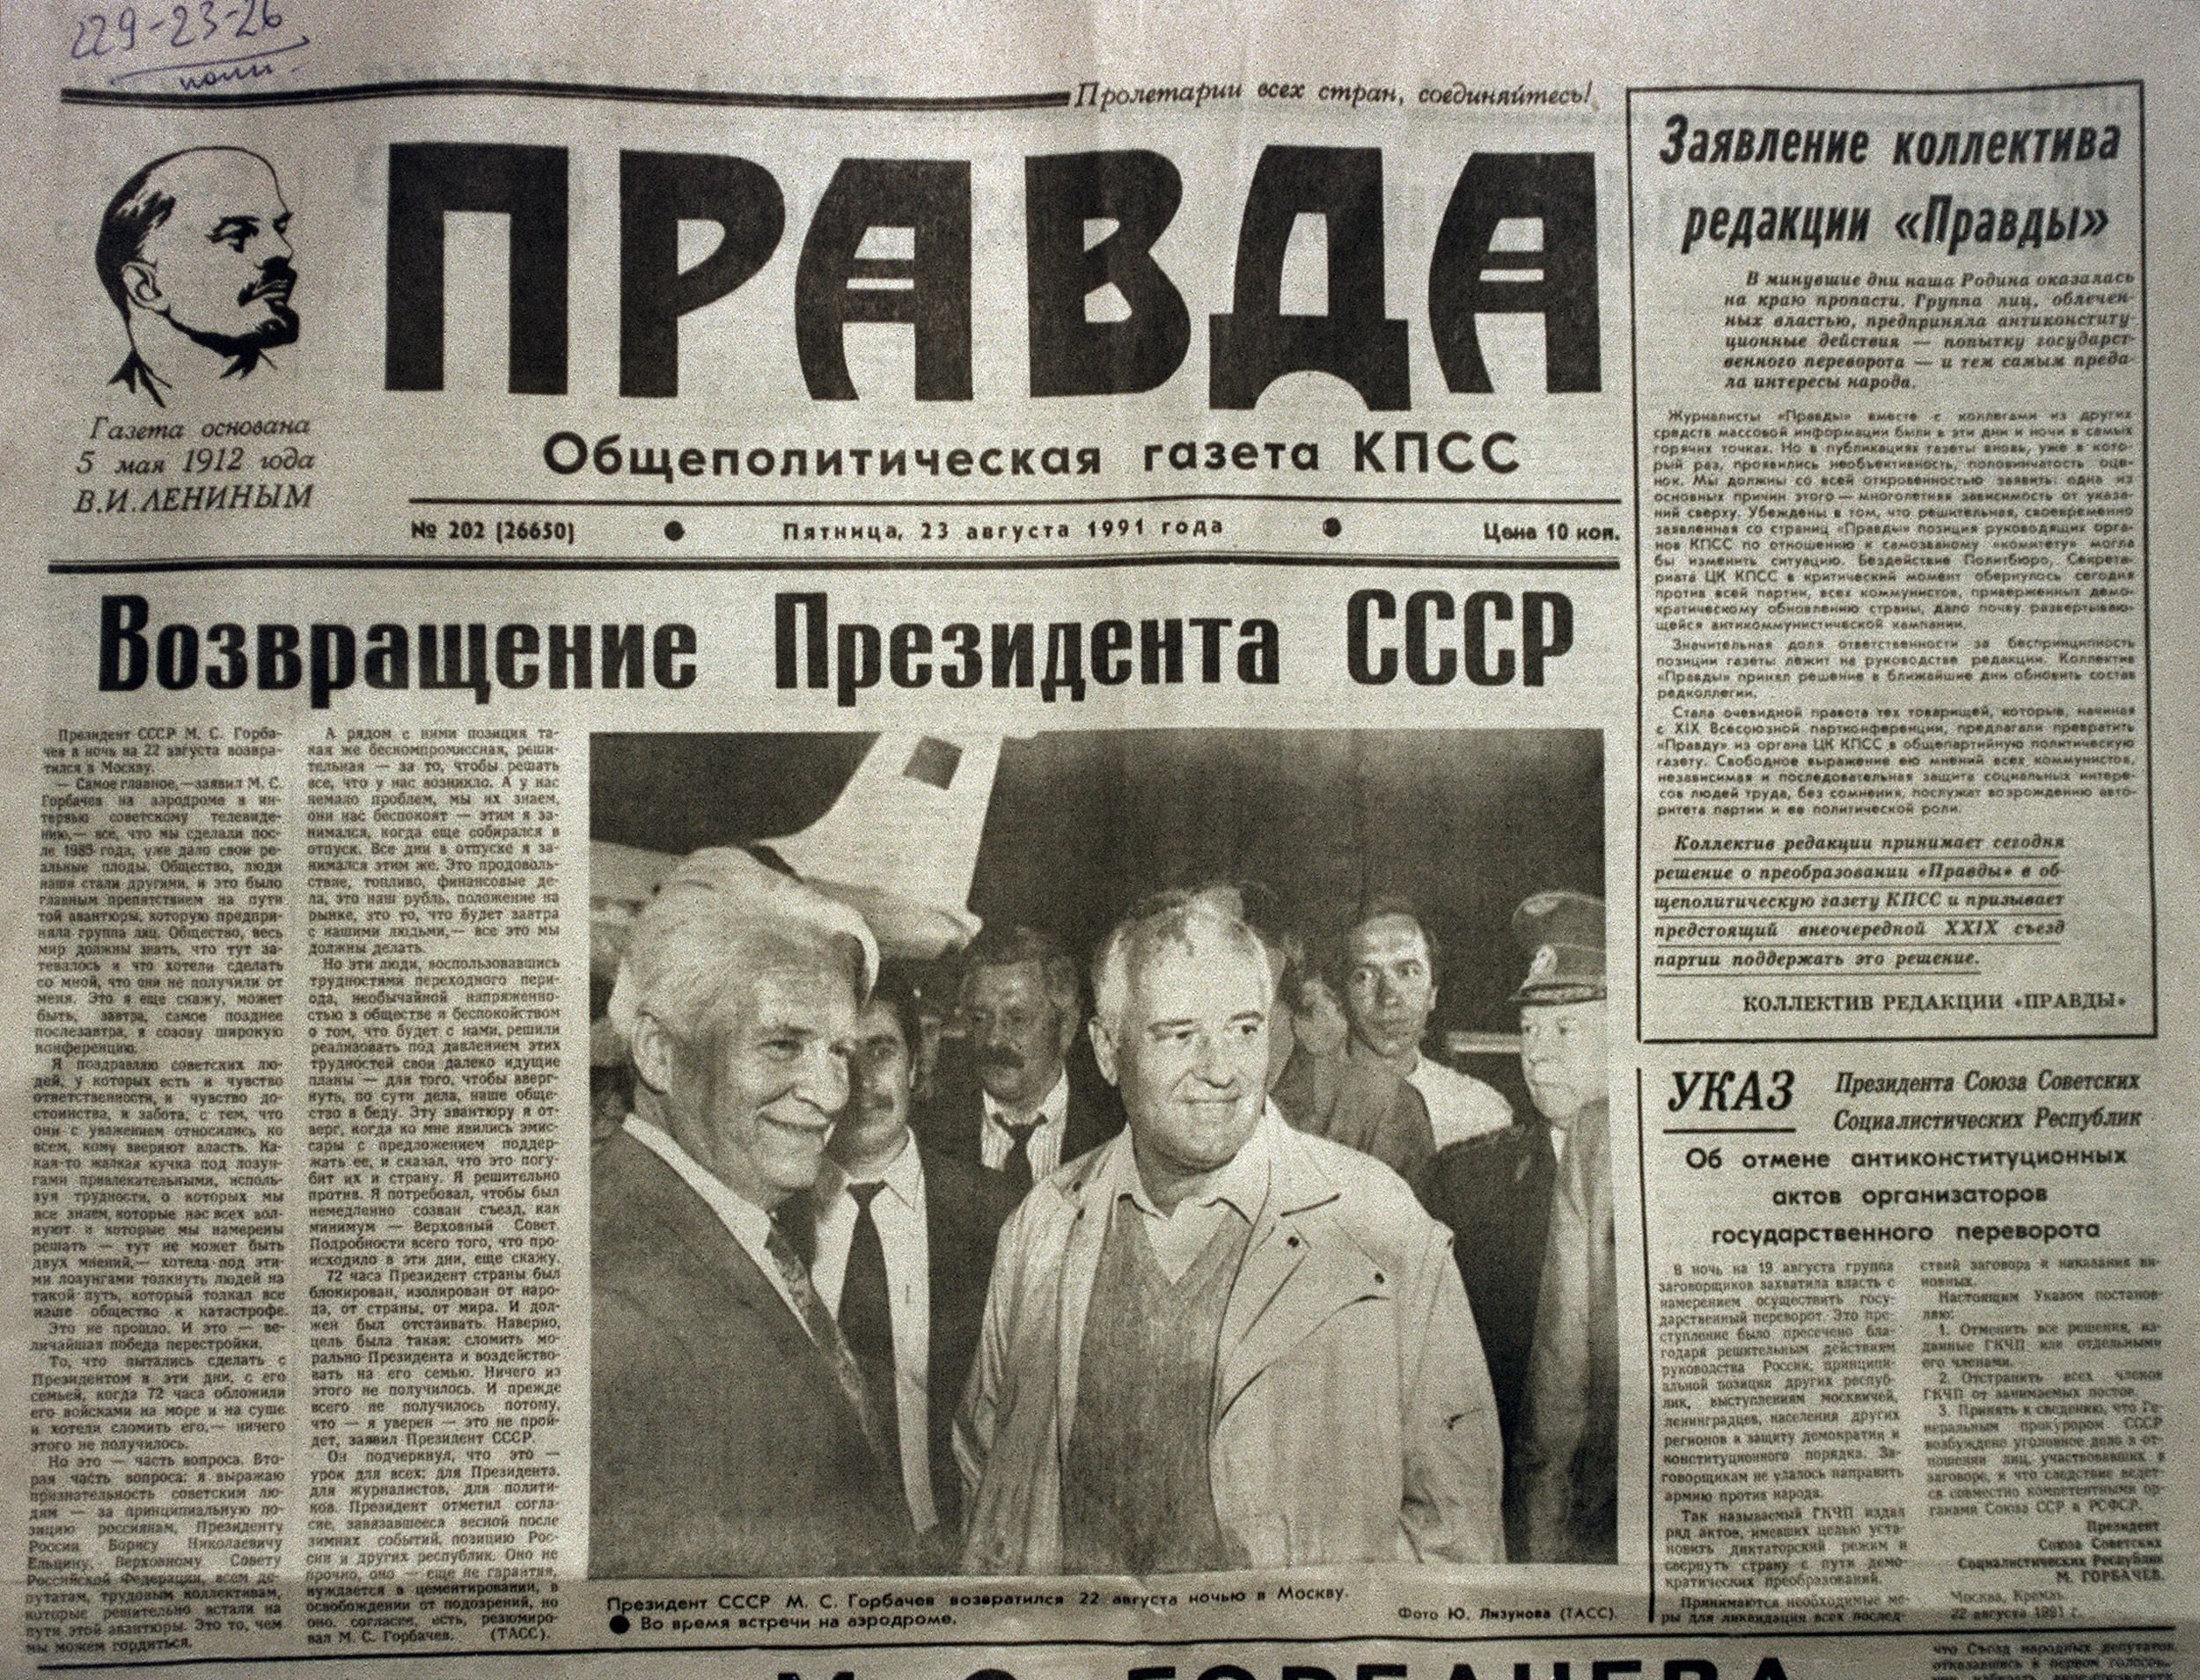 The frontpage of the Pravda Newspaper, featuring President Mikhail Gorbachev at Moscow airport after he was released following the failed coup attempt by Soviet officials, published on Aug. 23, 1991. (AFP Photo)